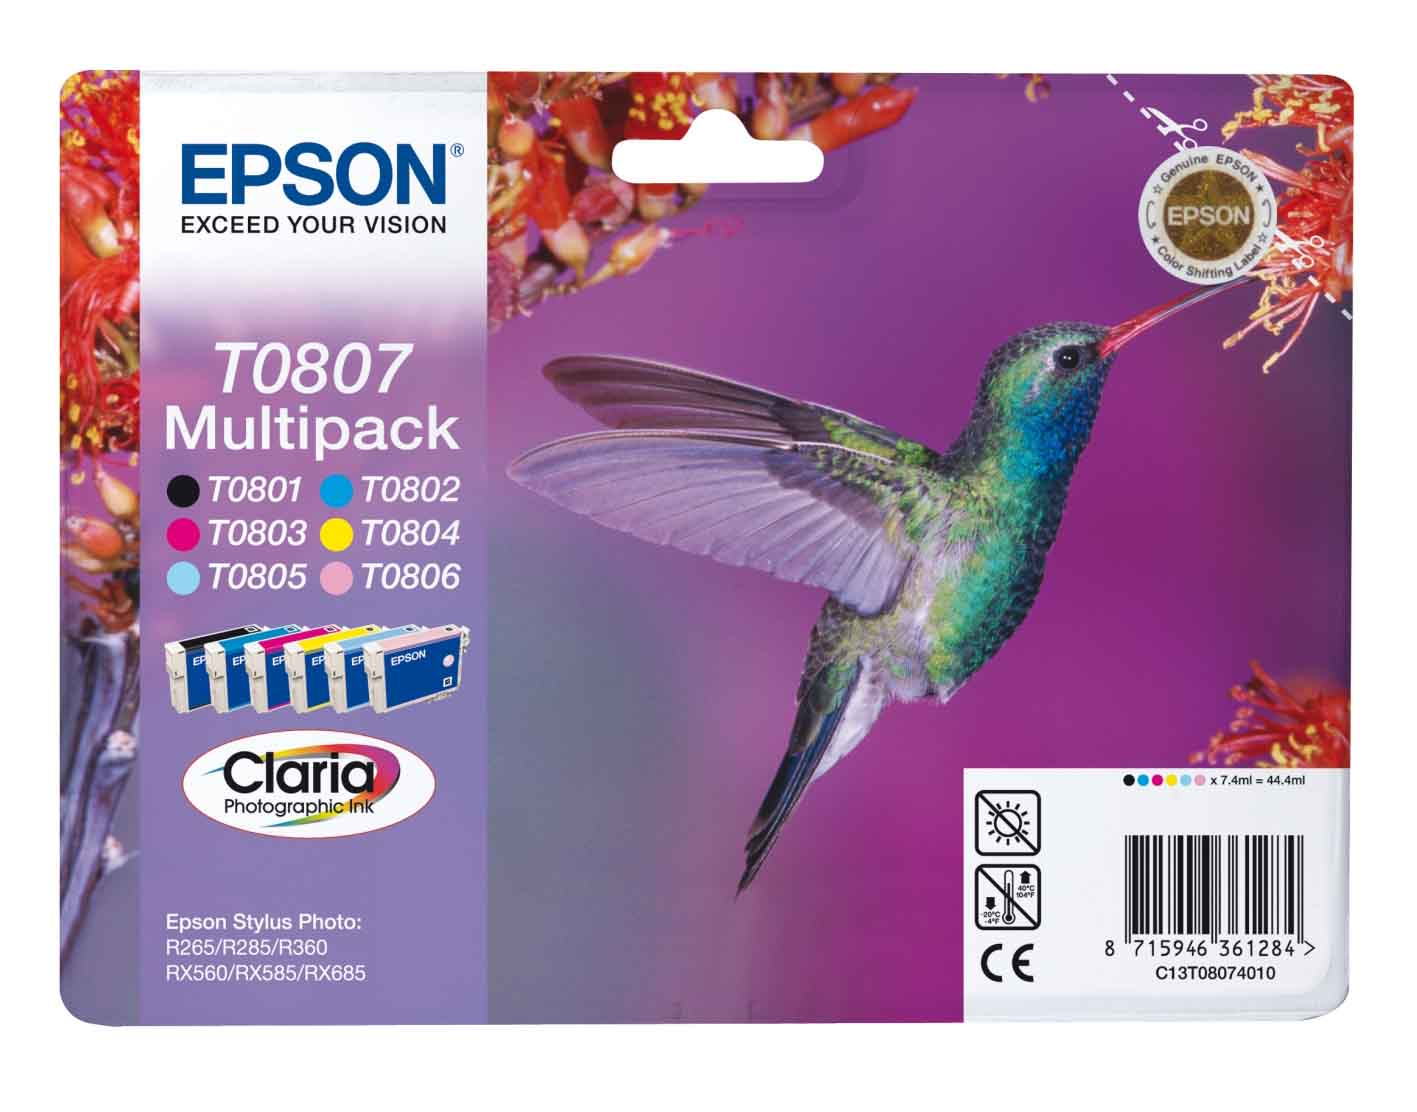 Genuine 6-Colour Multipack Epson T0807 Ink Cartridge - (C13T080740 Hummingbird Claria Photographic Ink Cartridges)